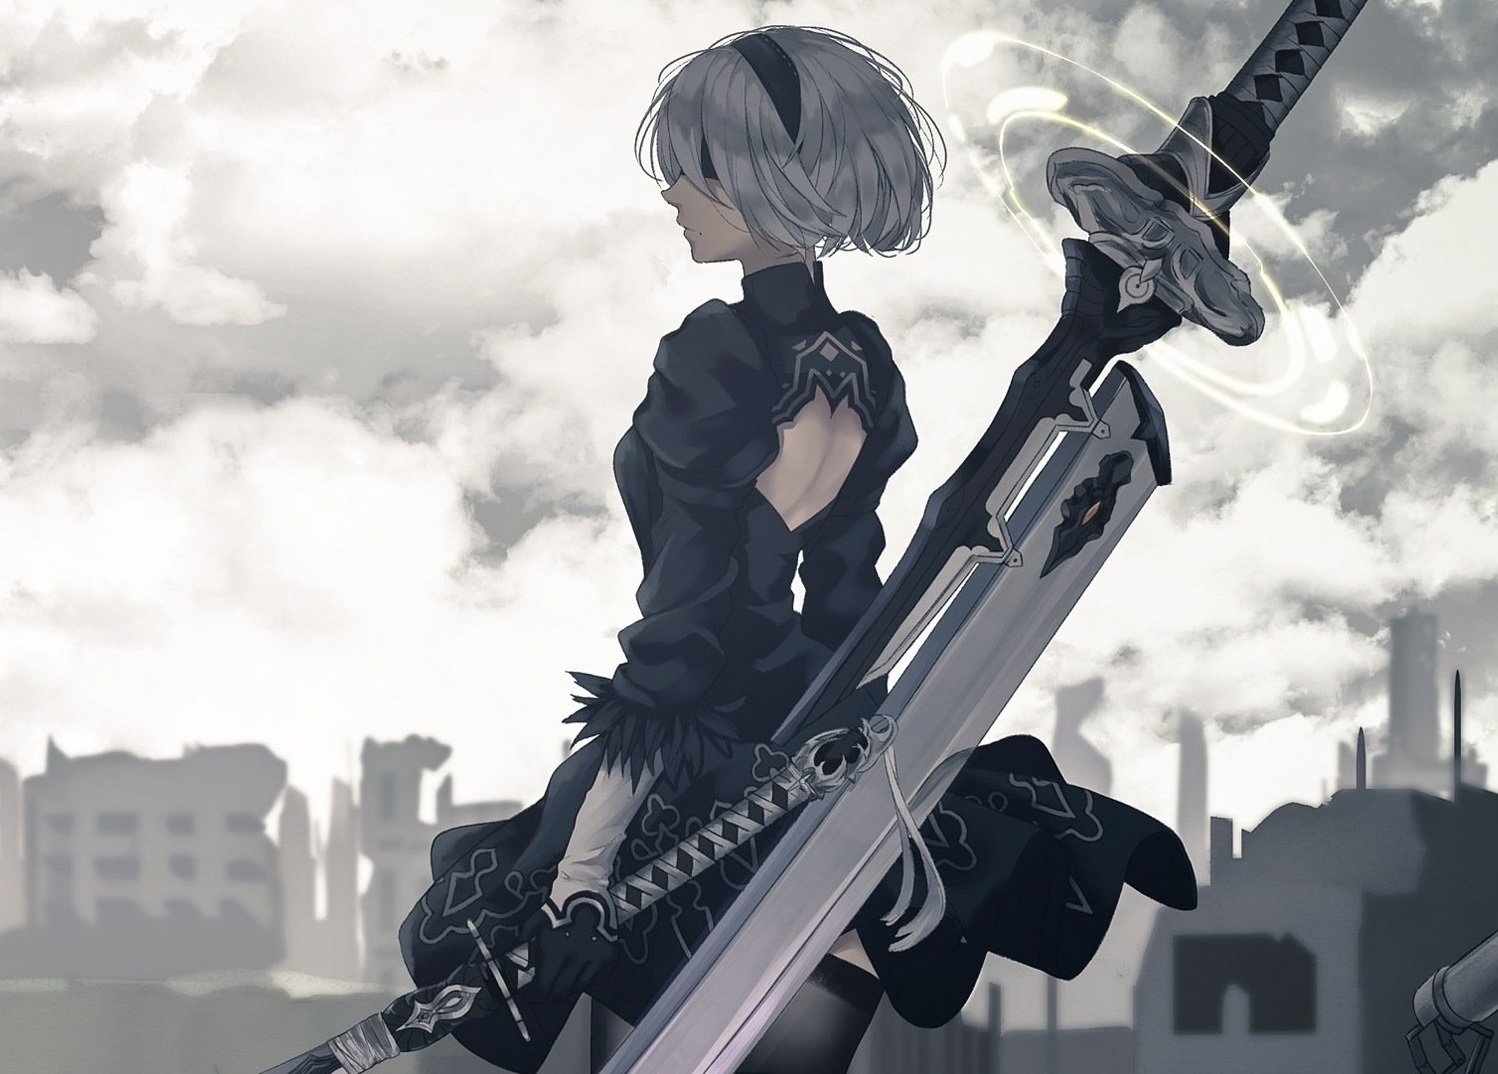 40 Best Nier Automata Images On Pinterest: NieR: Automata Really Is The Greatest Game Ever Made